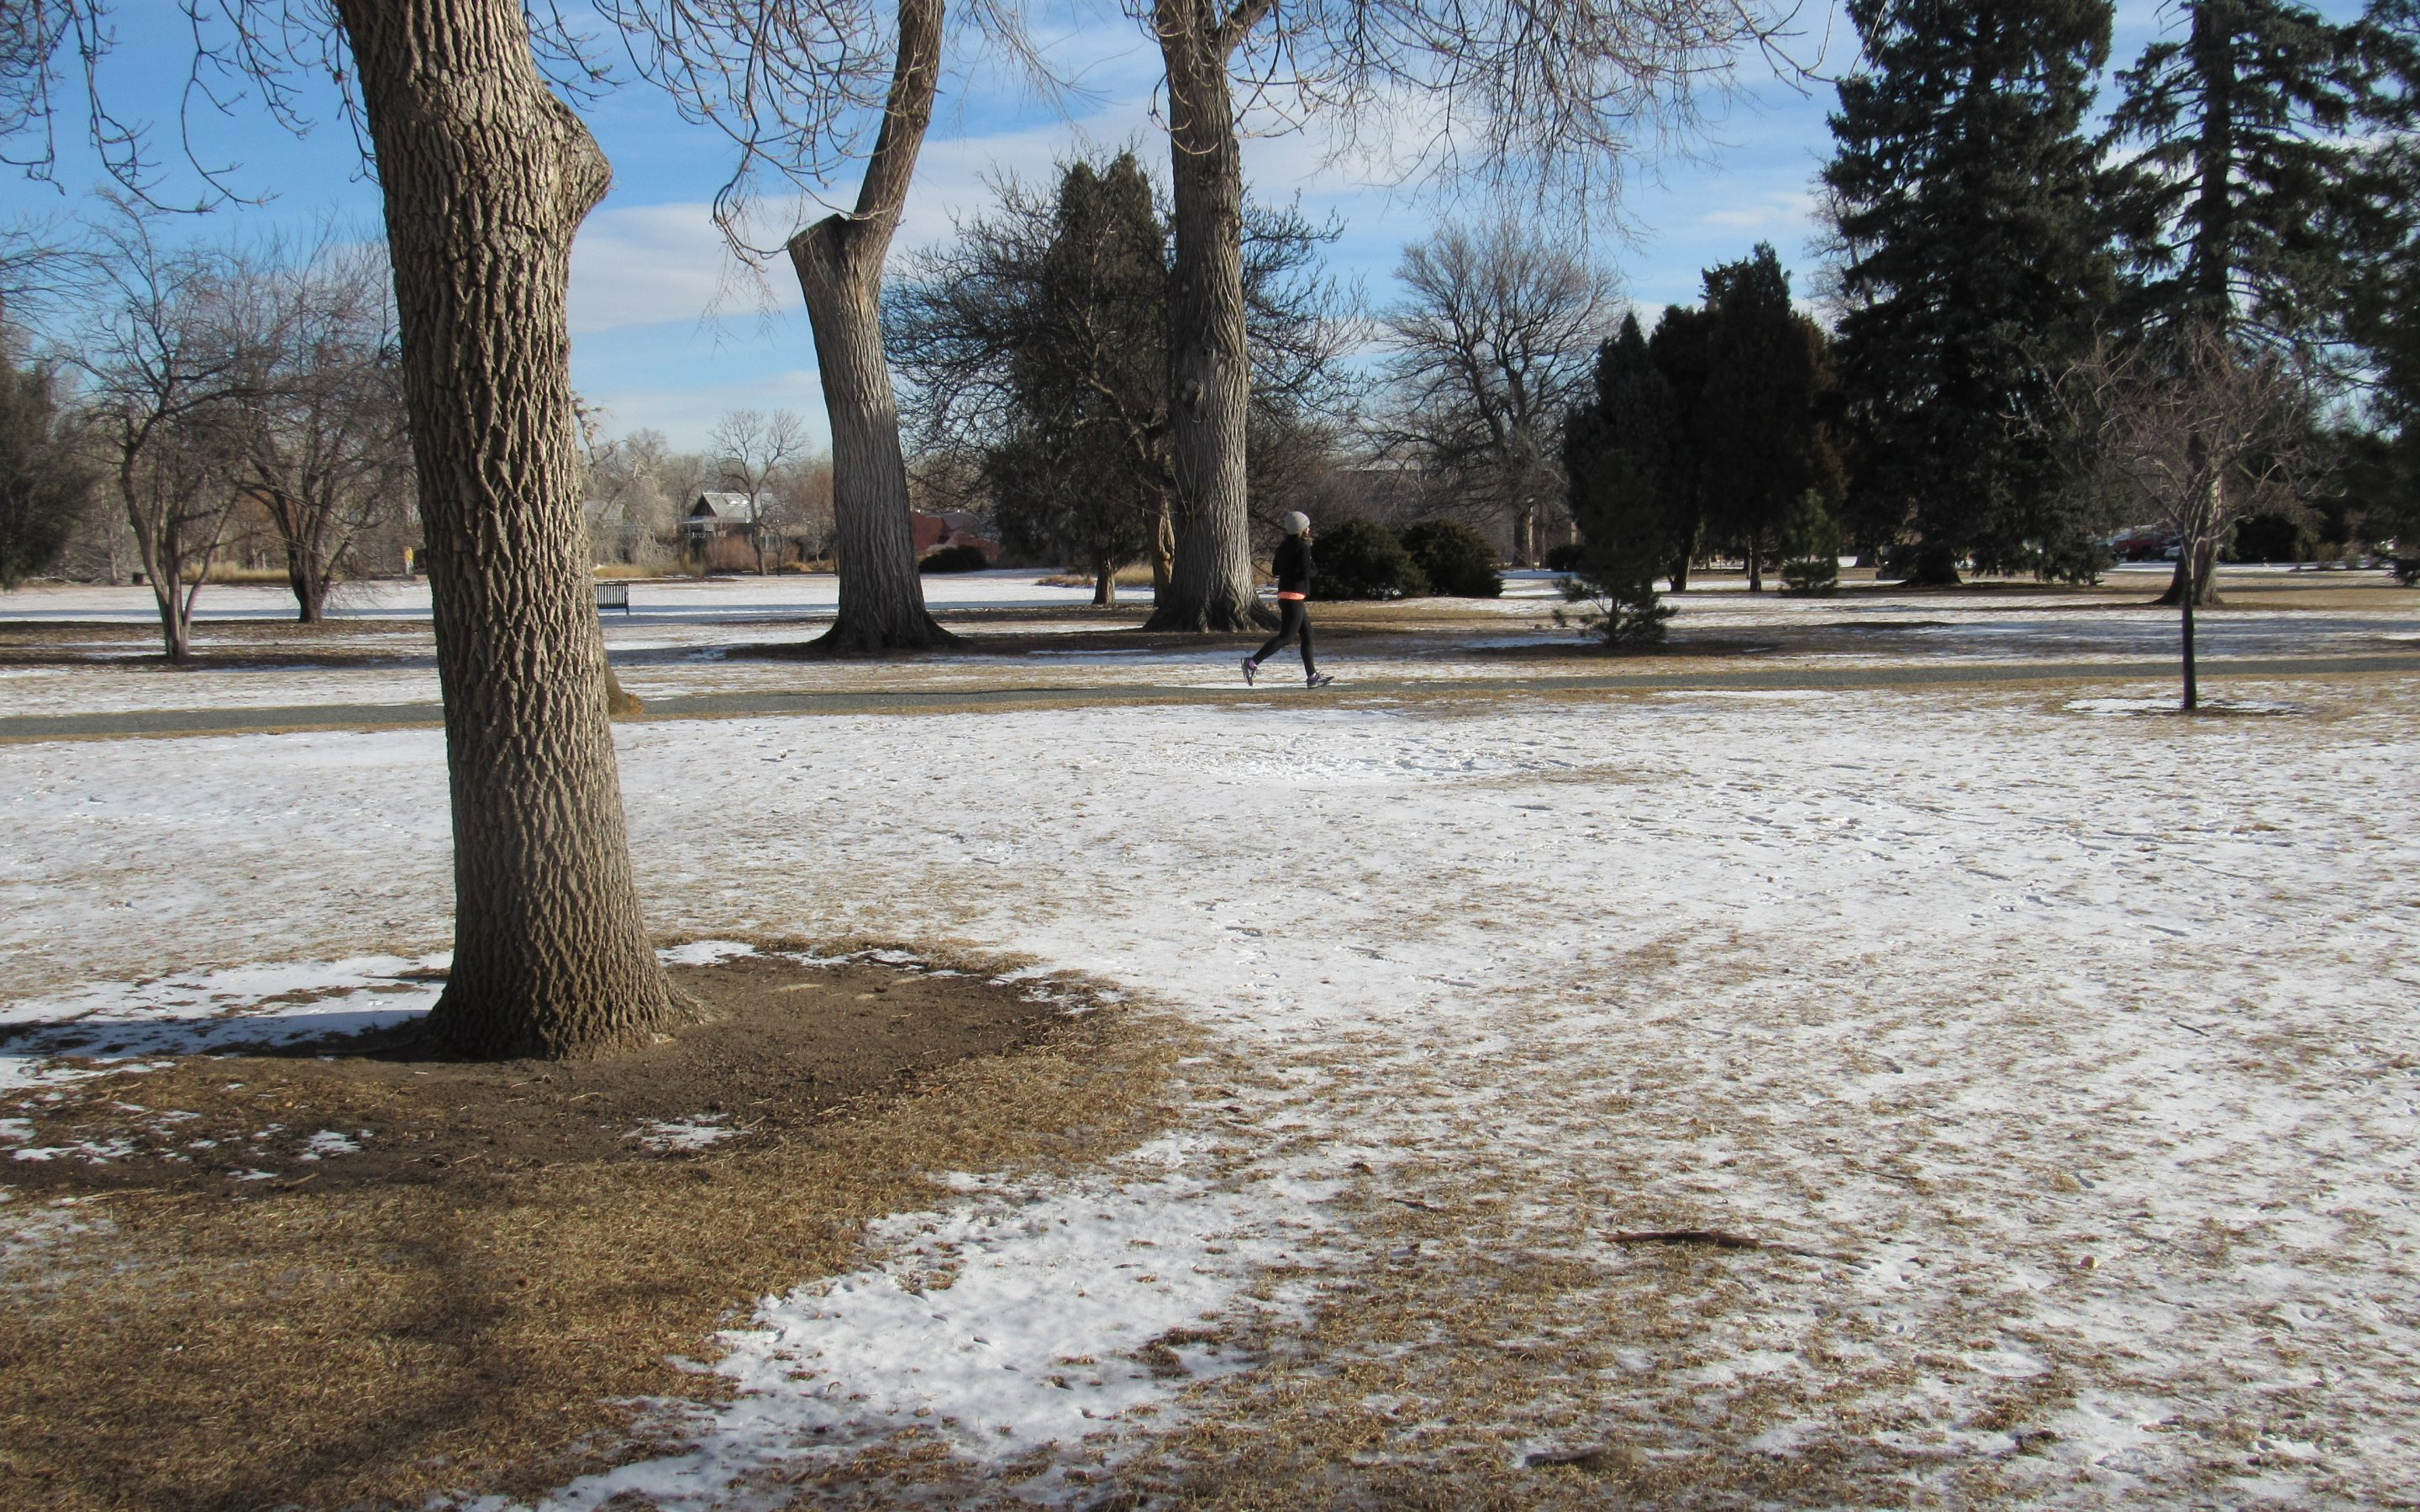 A woman jogs in Denver's City Park Jan. 23, 2019. Though statewide snowpacks have improved, the metro area actually slipped back into drought in December due to a lack of snow. Credit: Jerd Smith